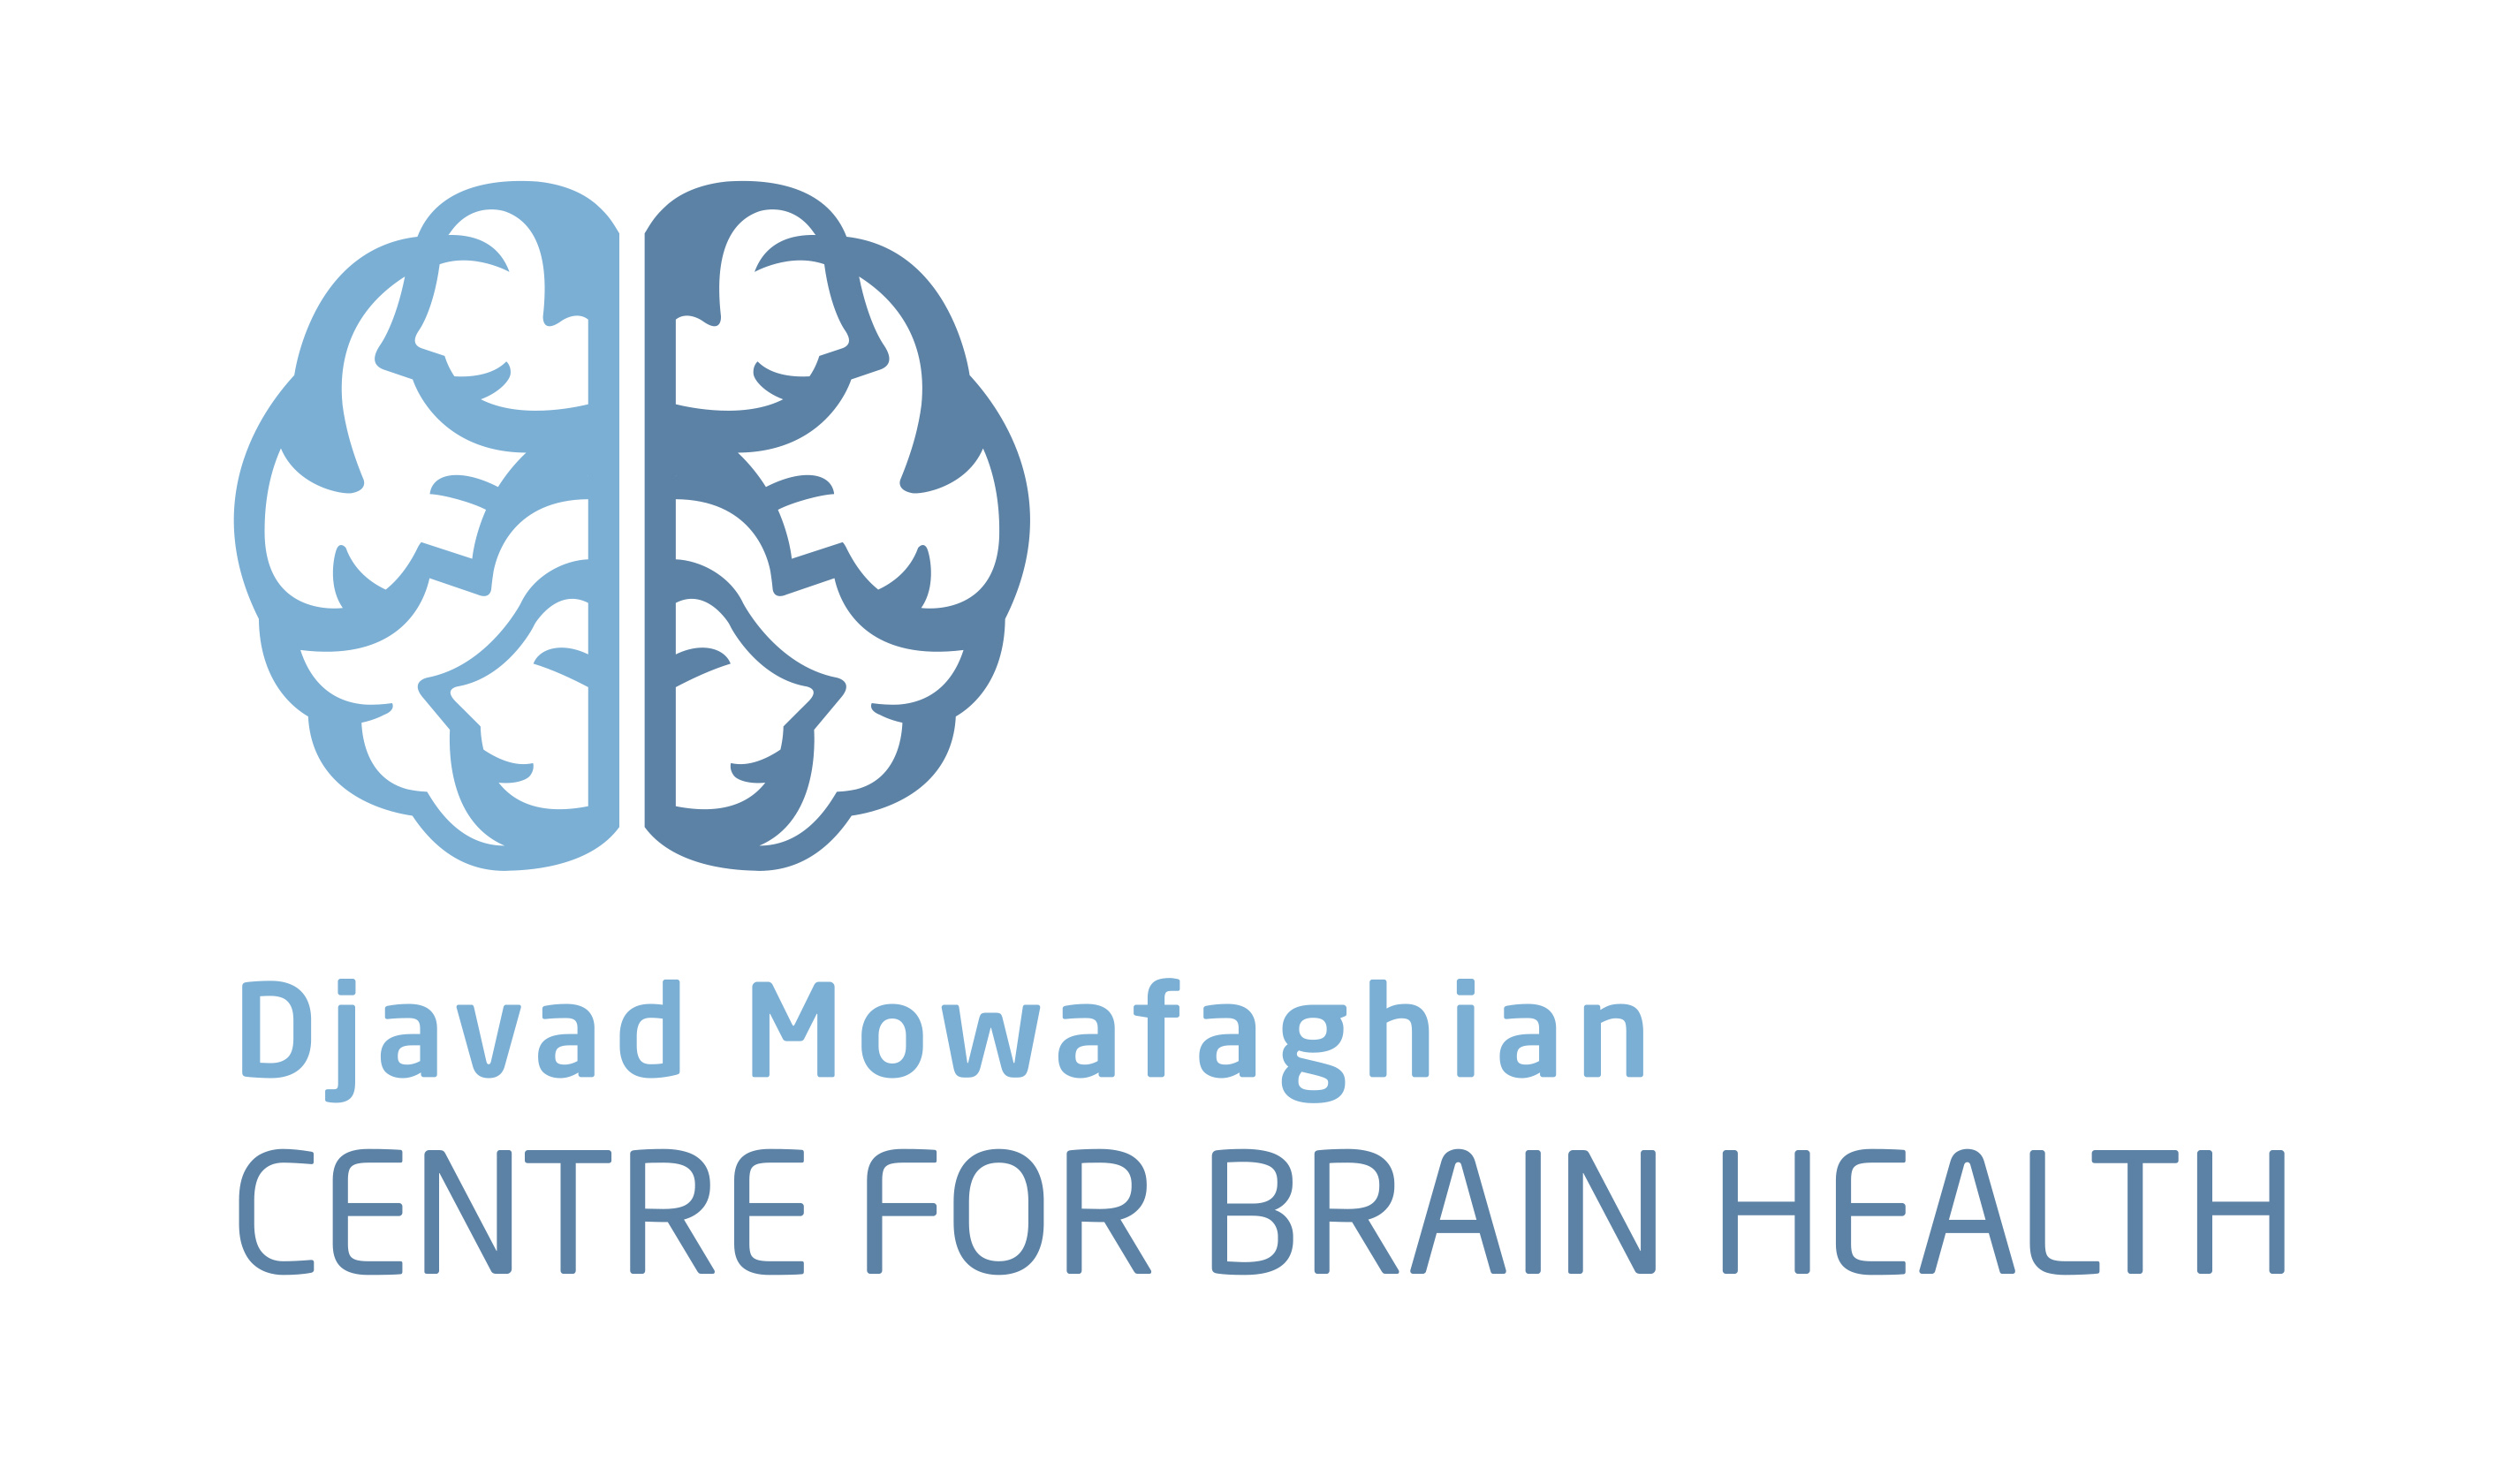 Djavad Mowafaghian Centre for Brain Health